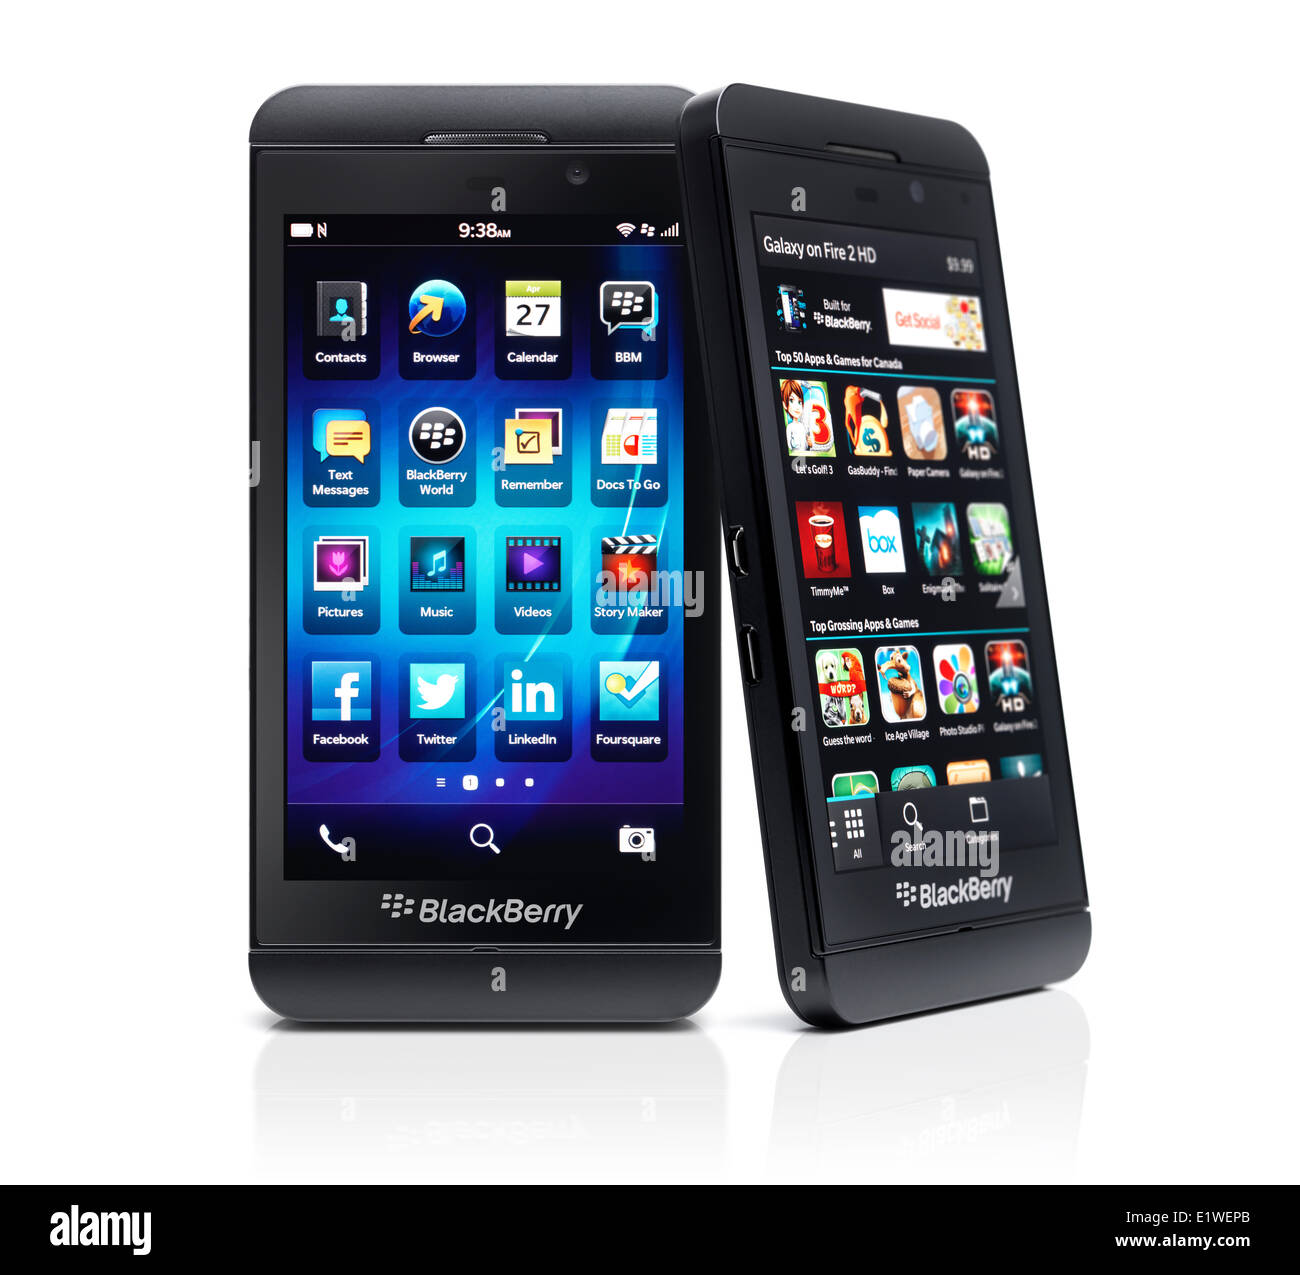 Two Blackberry Z10 smartphones with desktop app store on display. Black phones isolated on white background with - Stock Image